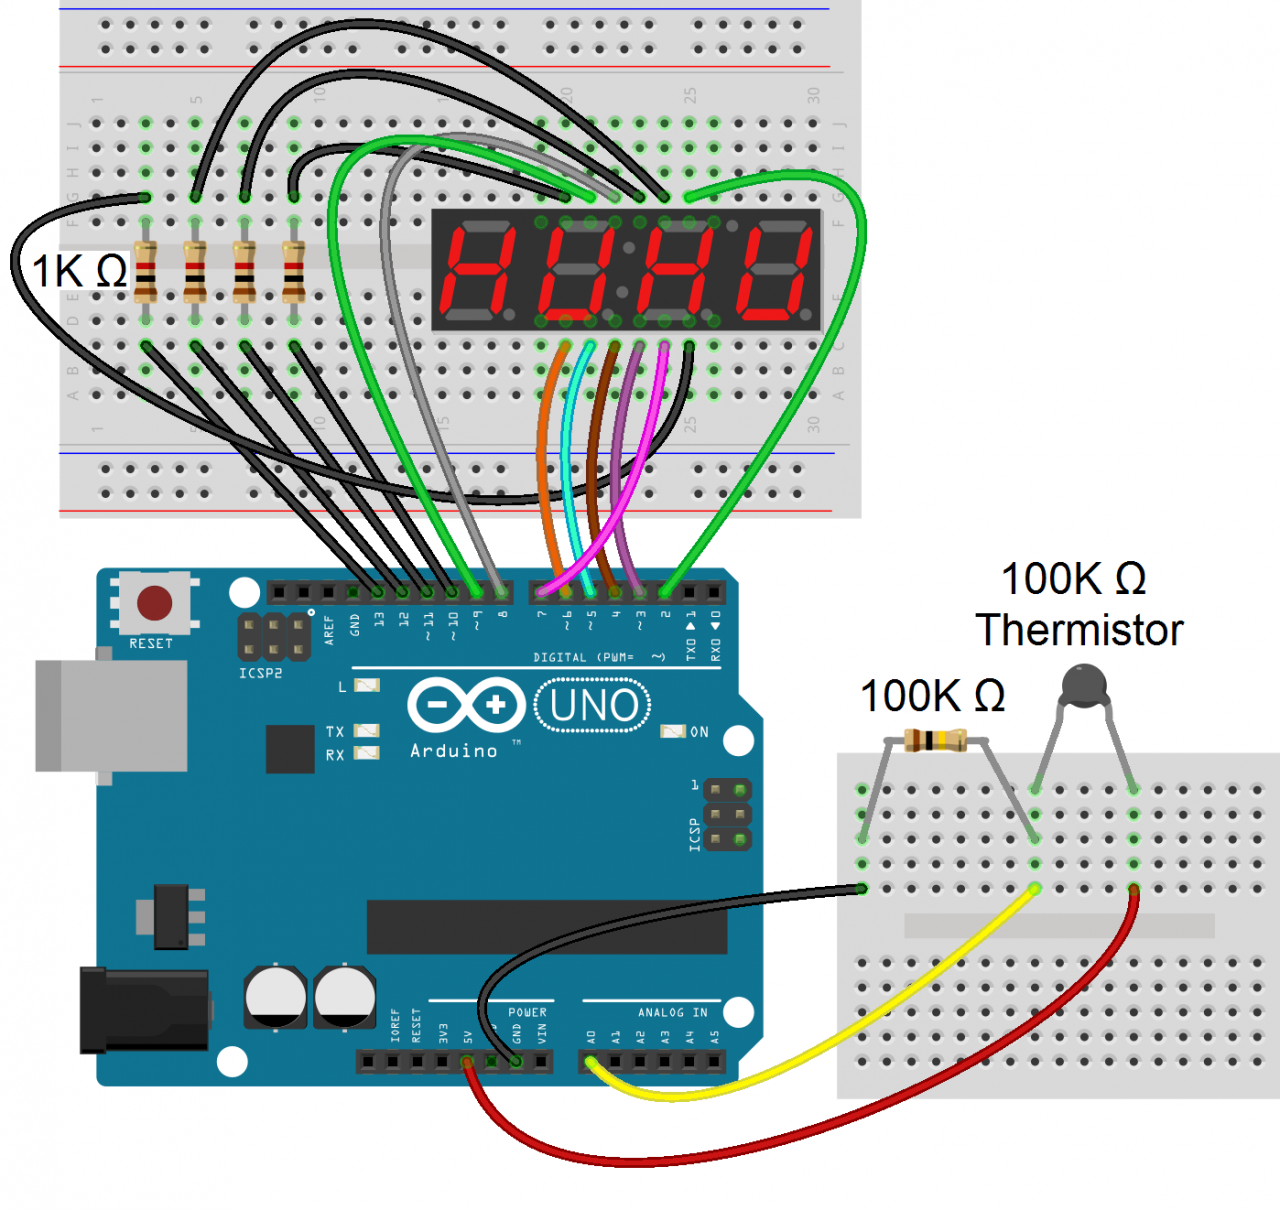 How To Set Up 7 Segment Displays On The Arduino Circuit Basics You Should Print Out A Copy Of This Wiring Diagram It Come In If Have Questions About Using Thermistor Or Just Want Learn More Them Check Our Other Tutorial With An